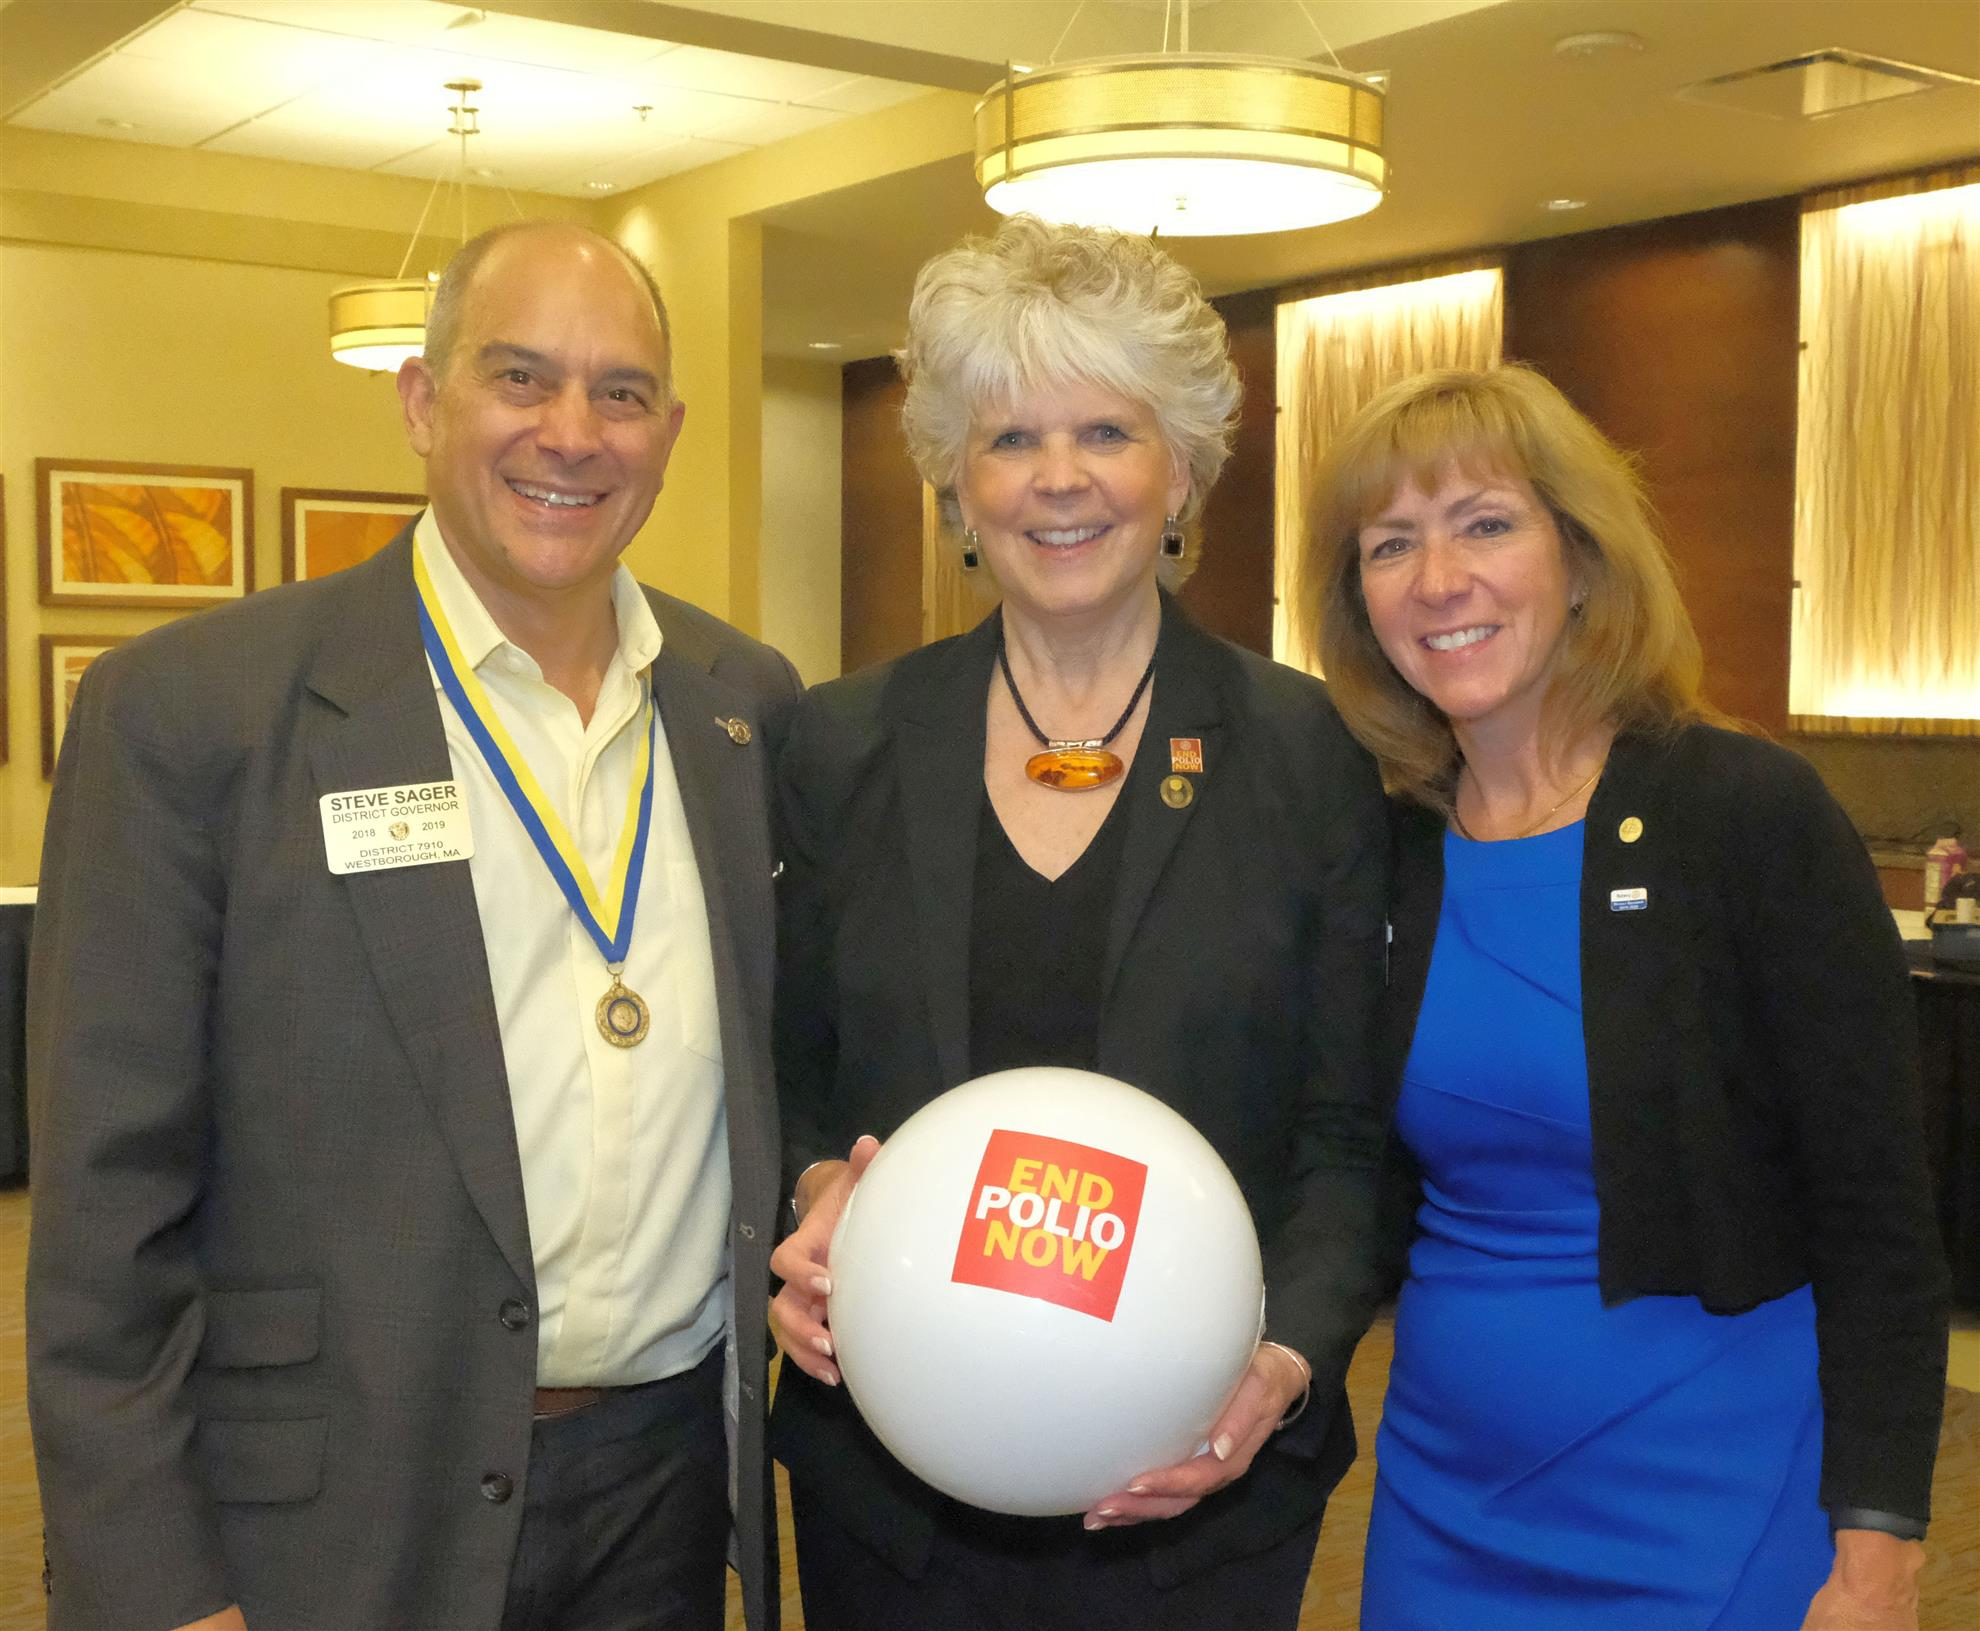 Left to right: Immediate Past District Governor Steve Sager, chair of the District Foundation Committee; Ann Lee Hussey; and District Governor Pam Anastasi